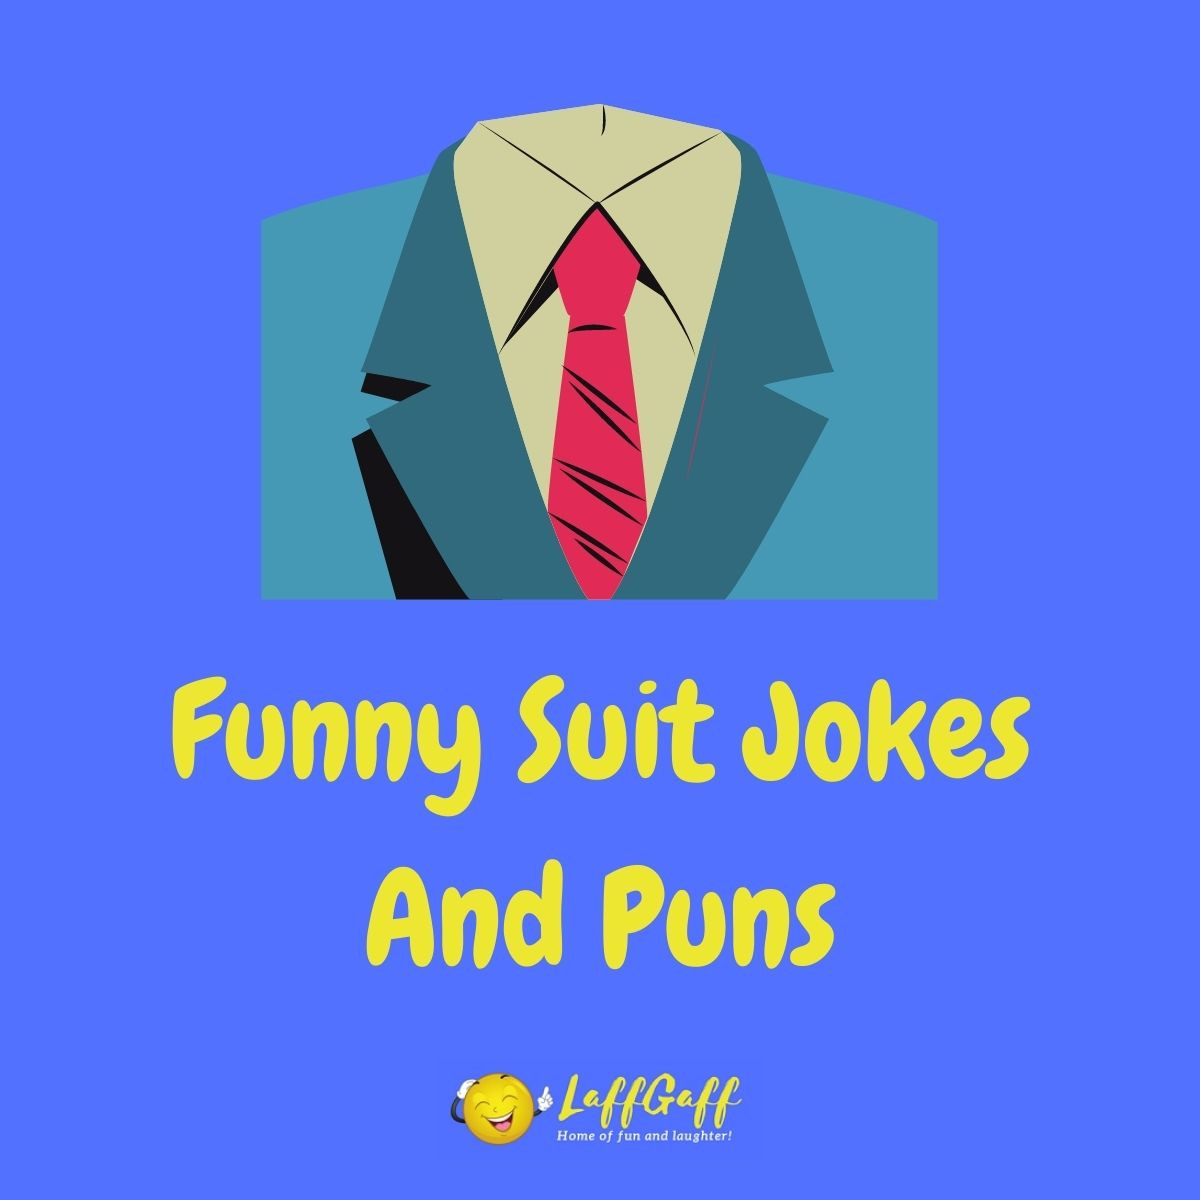 Featured image for a page of funny suit jokes and puns.